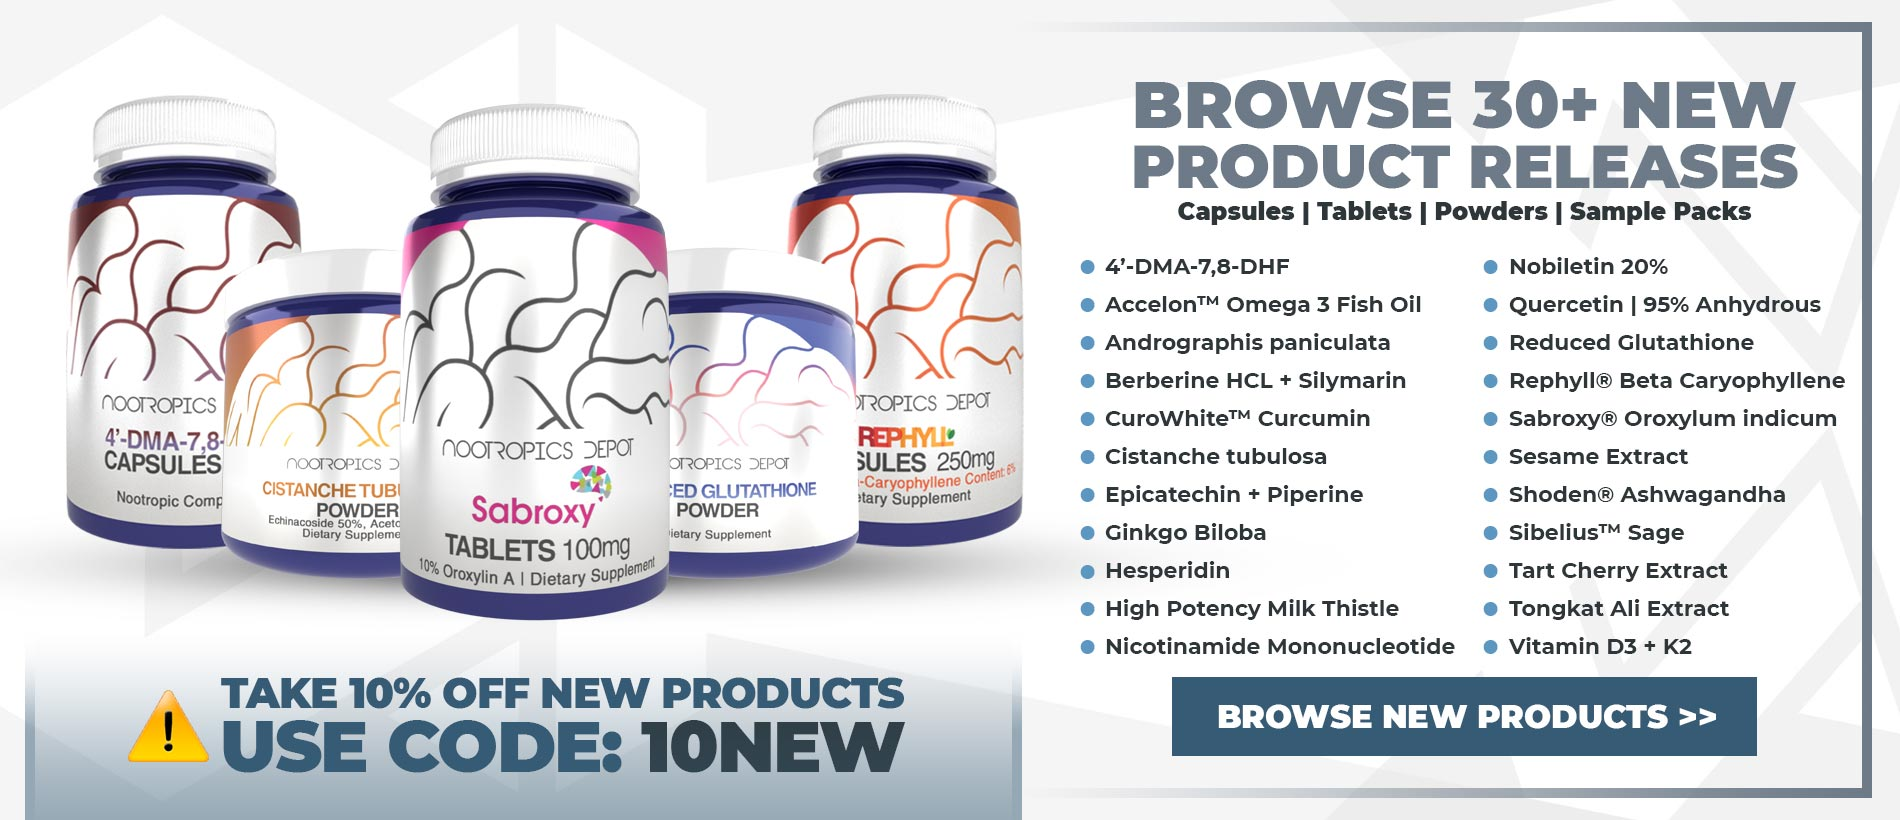 30+ New Products Available Now | Use Code 10NEW To Take 10% Off All New Products